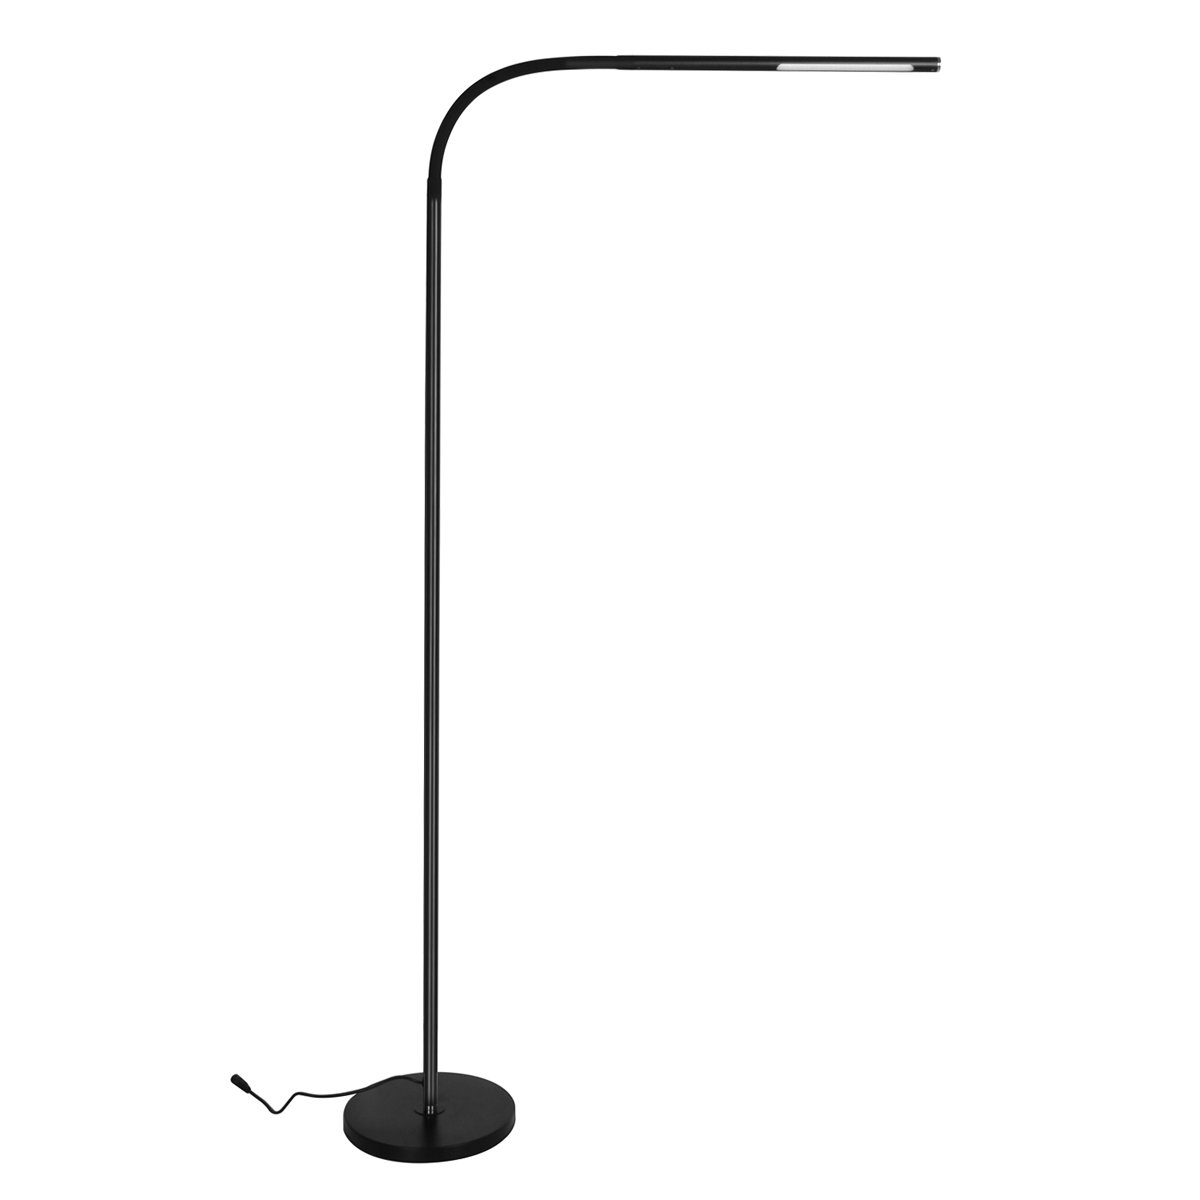 Byingo LED Reading and Crafting Floor Lamp Modern Simplicity Style 4 Color Modes 500 Lumens Stepless Dimming Fully Adjustable Long Arm Touch Sensor Switch, for Sofa/Desk Reading, Living Room, Bedroom FL-01